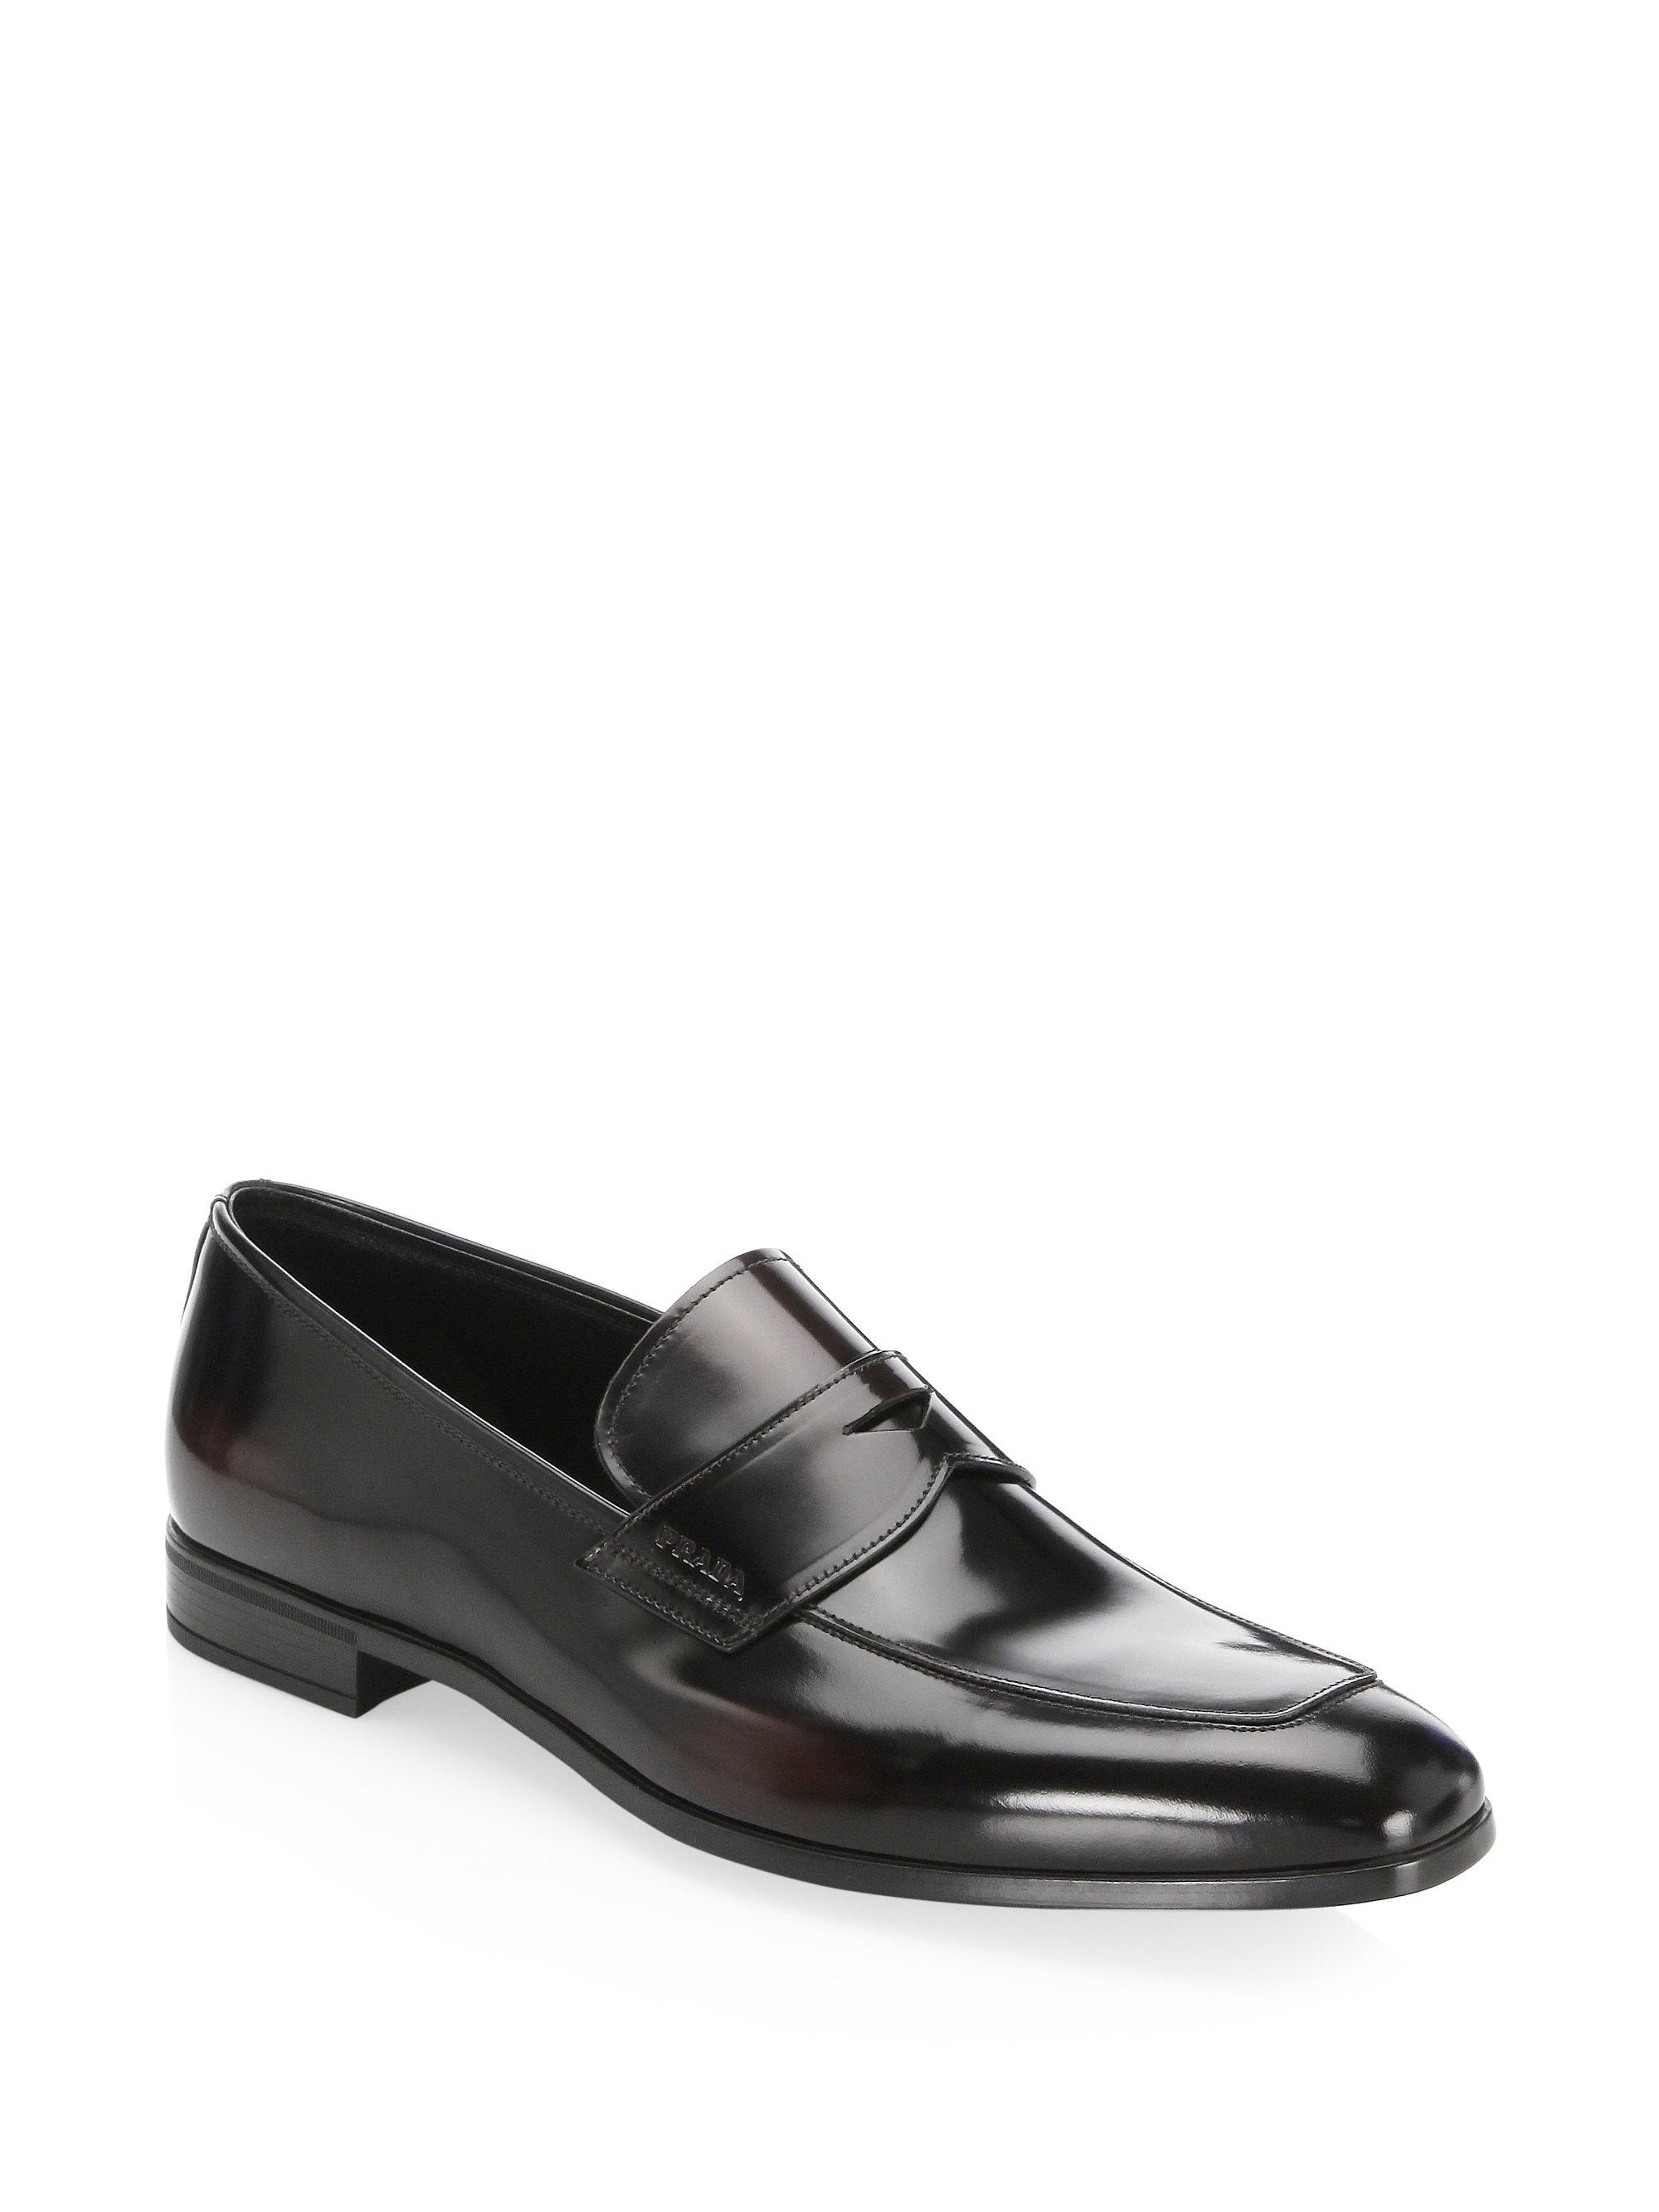 a2a03d70ab9 Prada Leather Penny Loafers in Brown for Men - Lyst